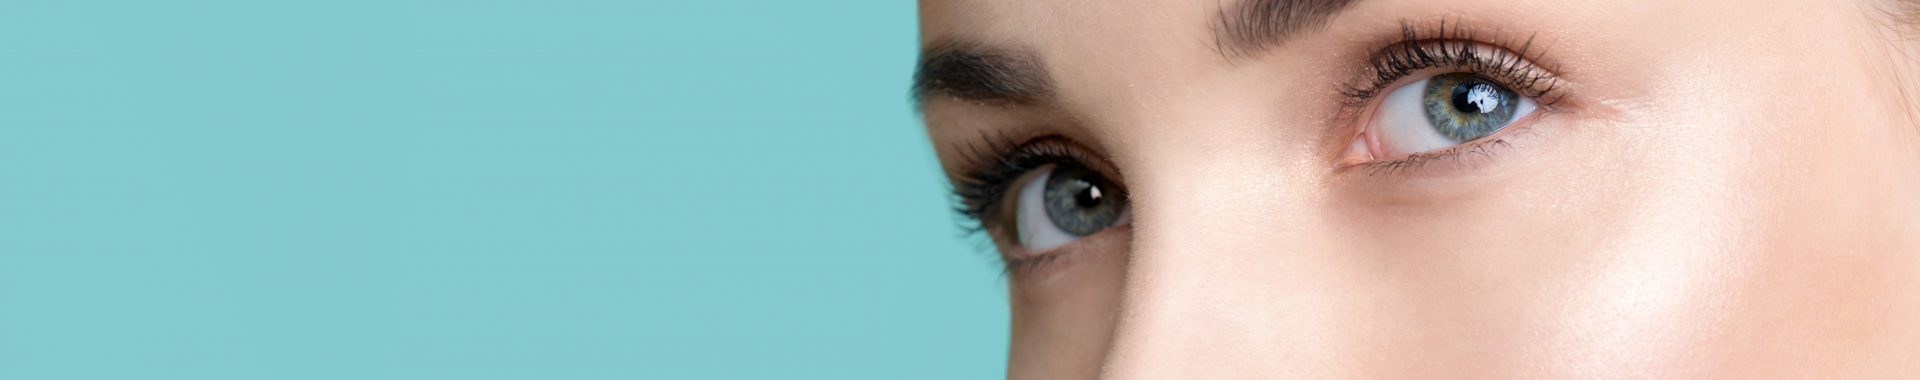 banner image for eyes and skin treatments